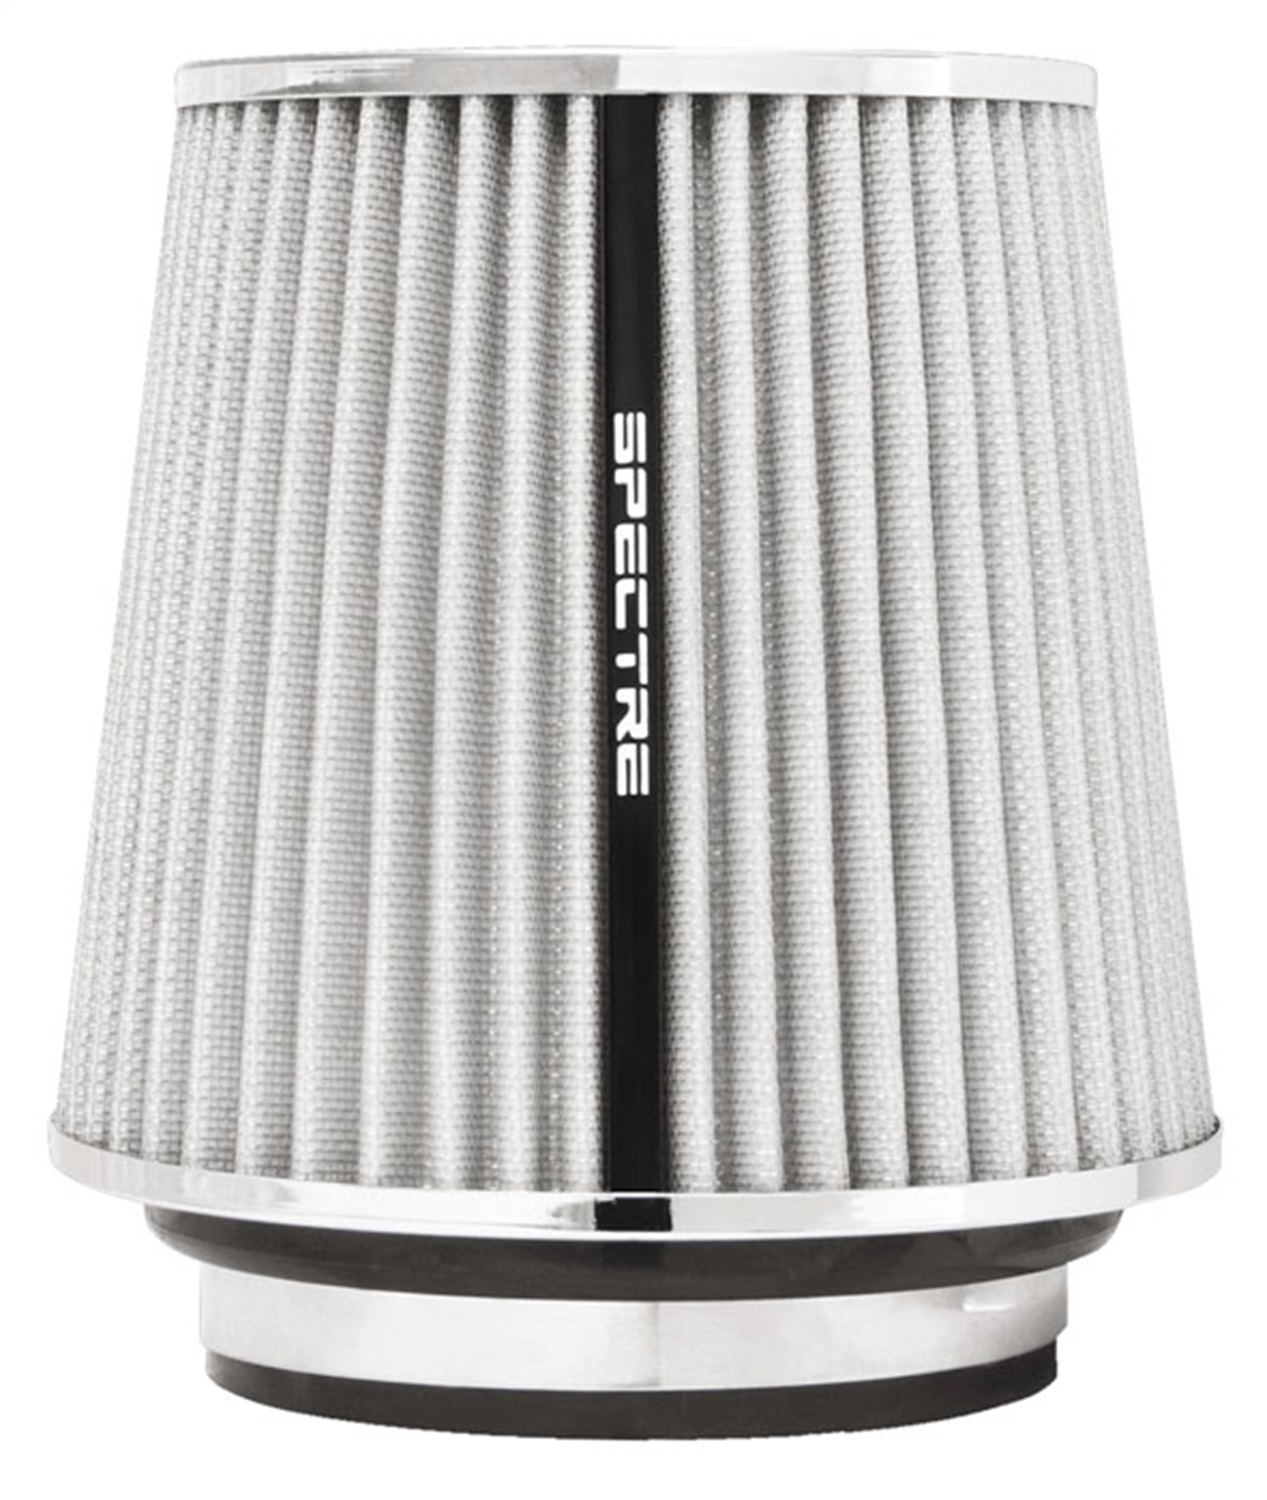 Spectre Performance 8138 Air Filter 8138